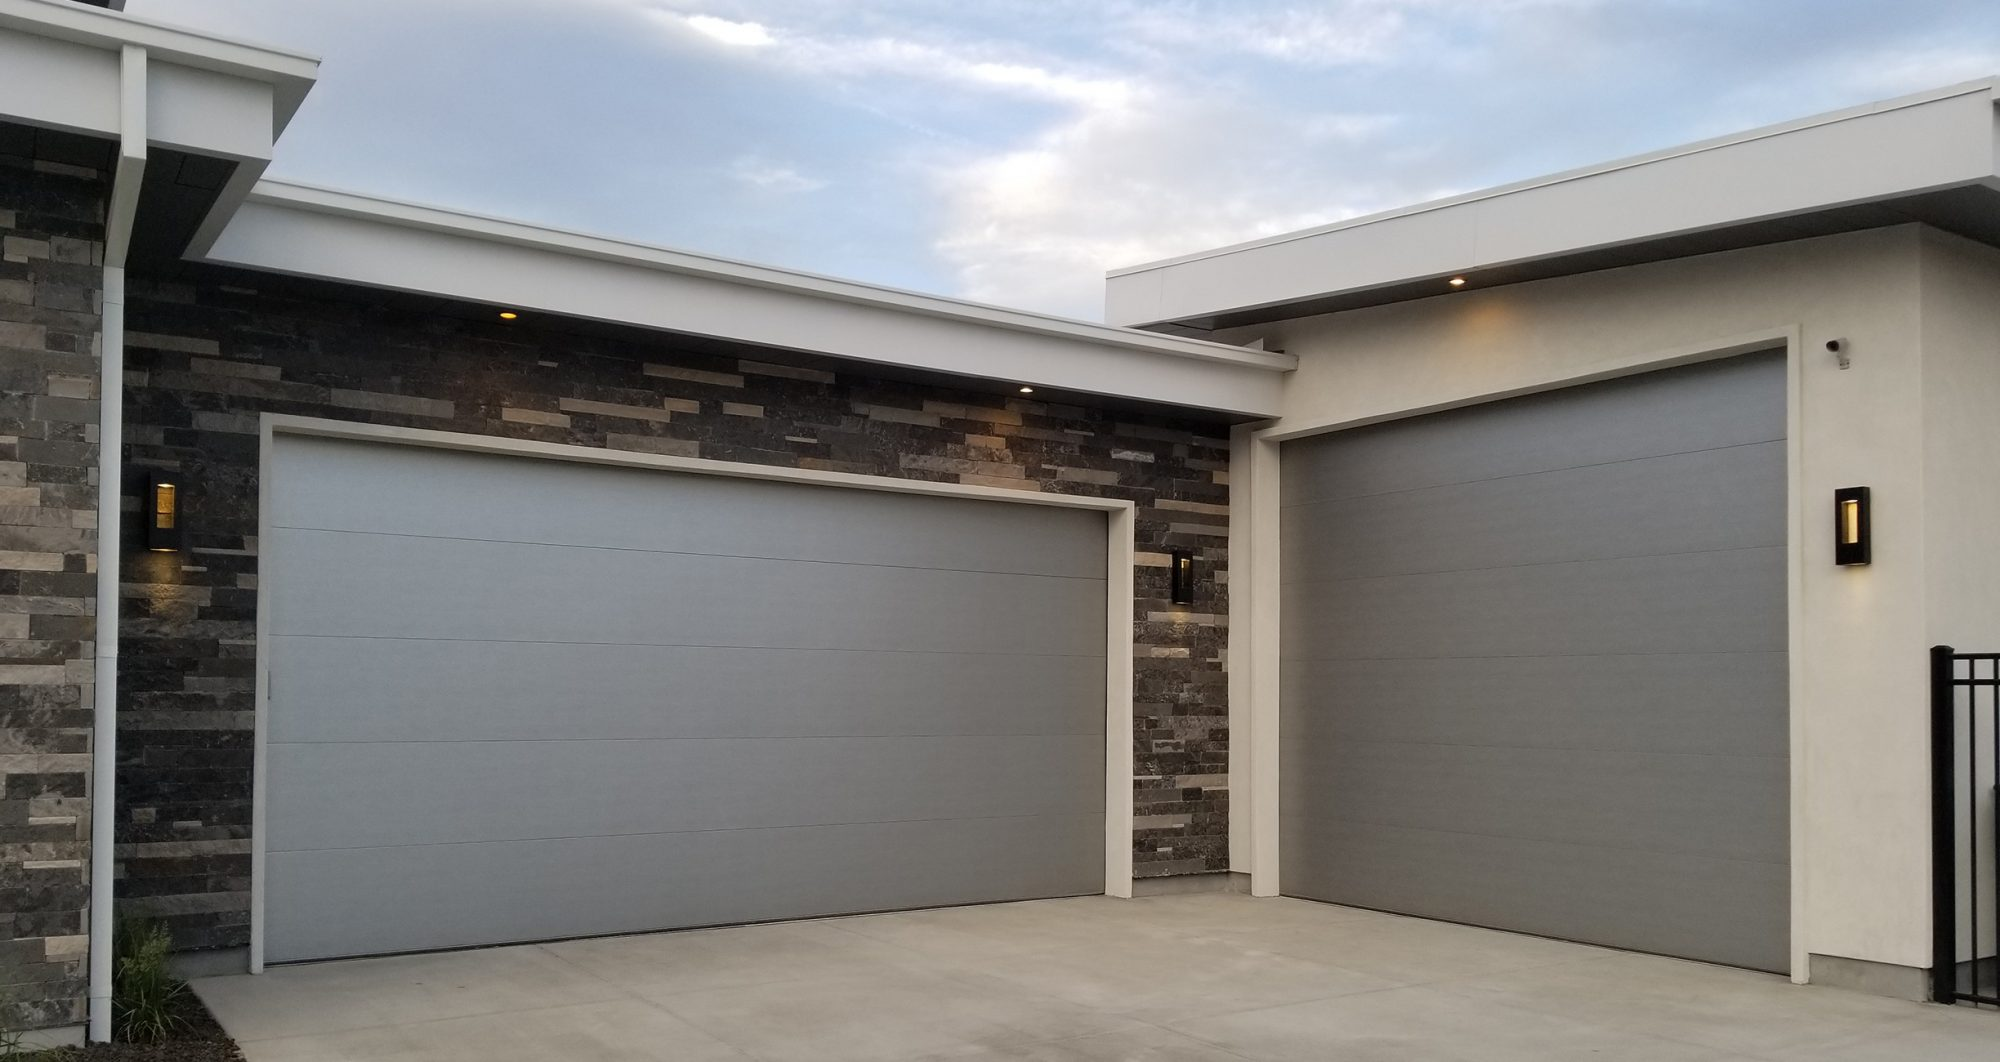 Commercial Garage Gate Repair and Installation Service